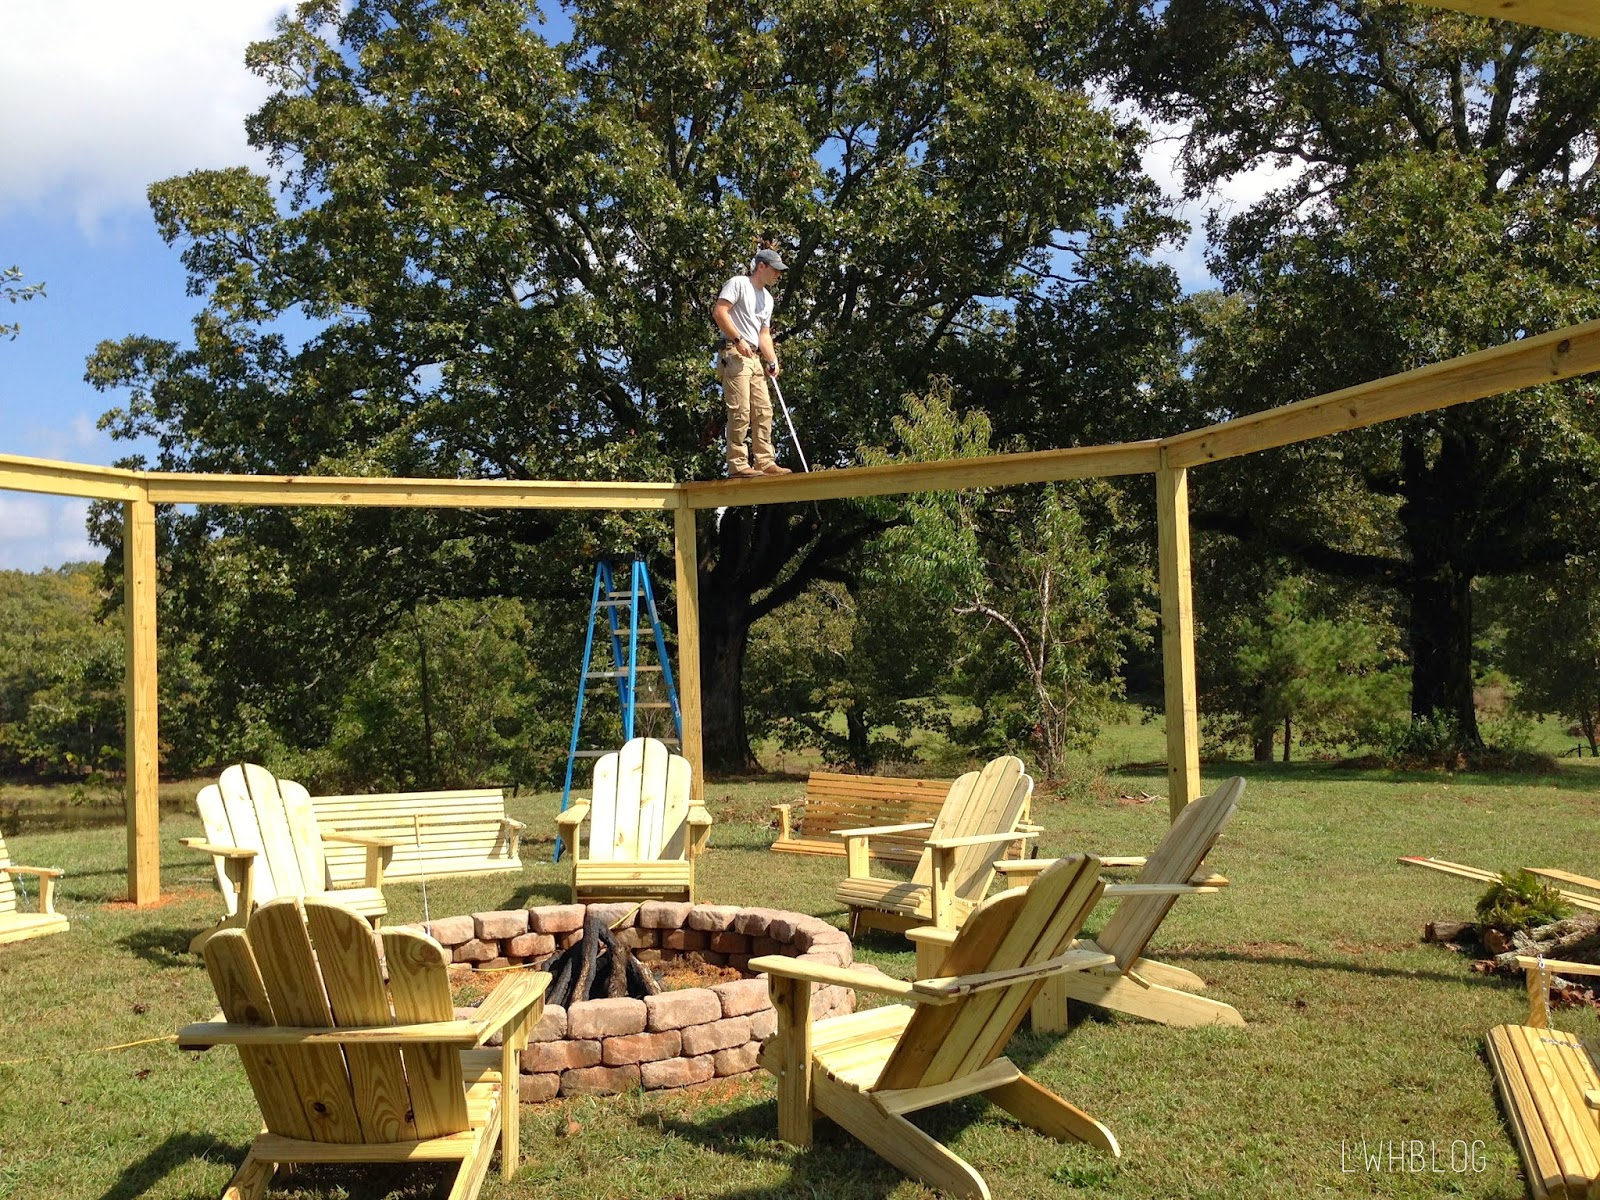 Building a Pergola with a Fire Pit and Adirondack Chairs by Little White House Blog featured on %40Remodelaholic Top Result 50 Awesome Backyard Creations Fire Pit Picture 2018 Ojr7